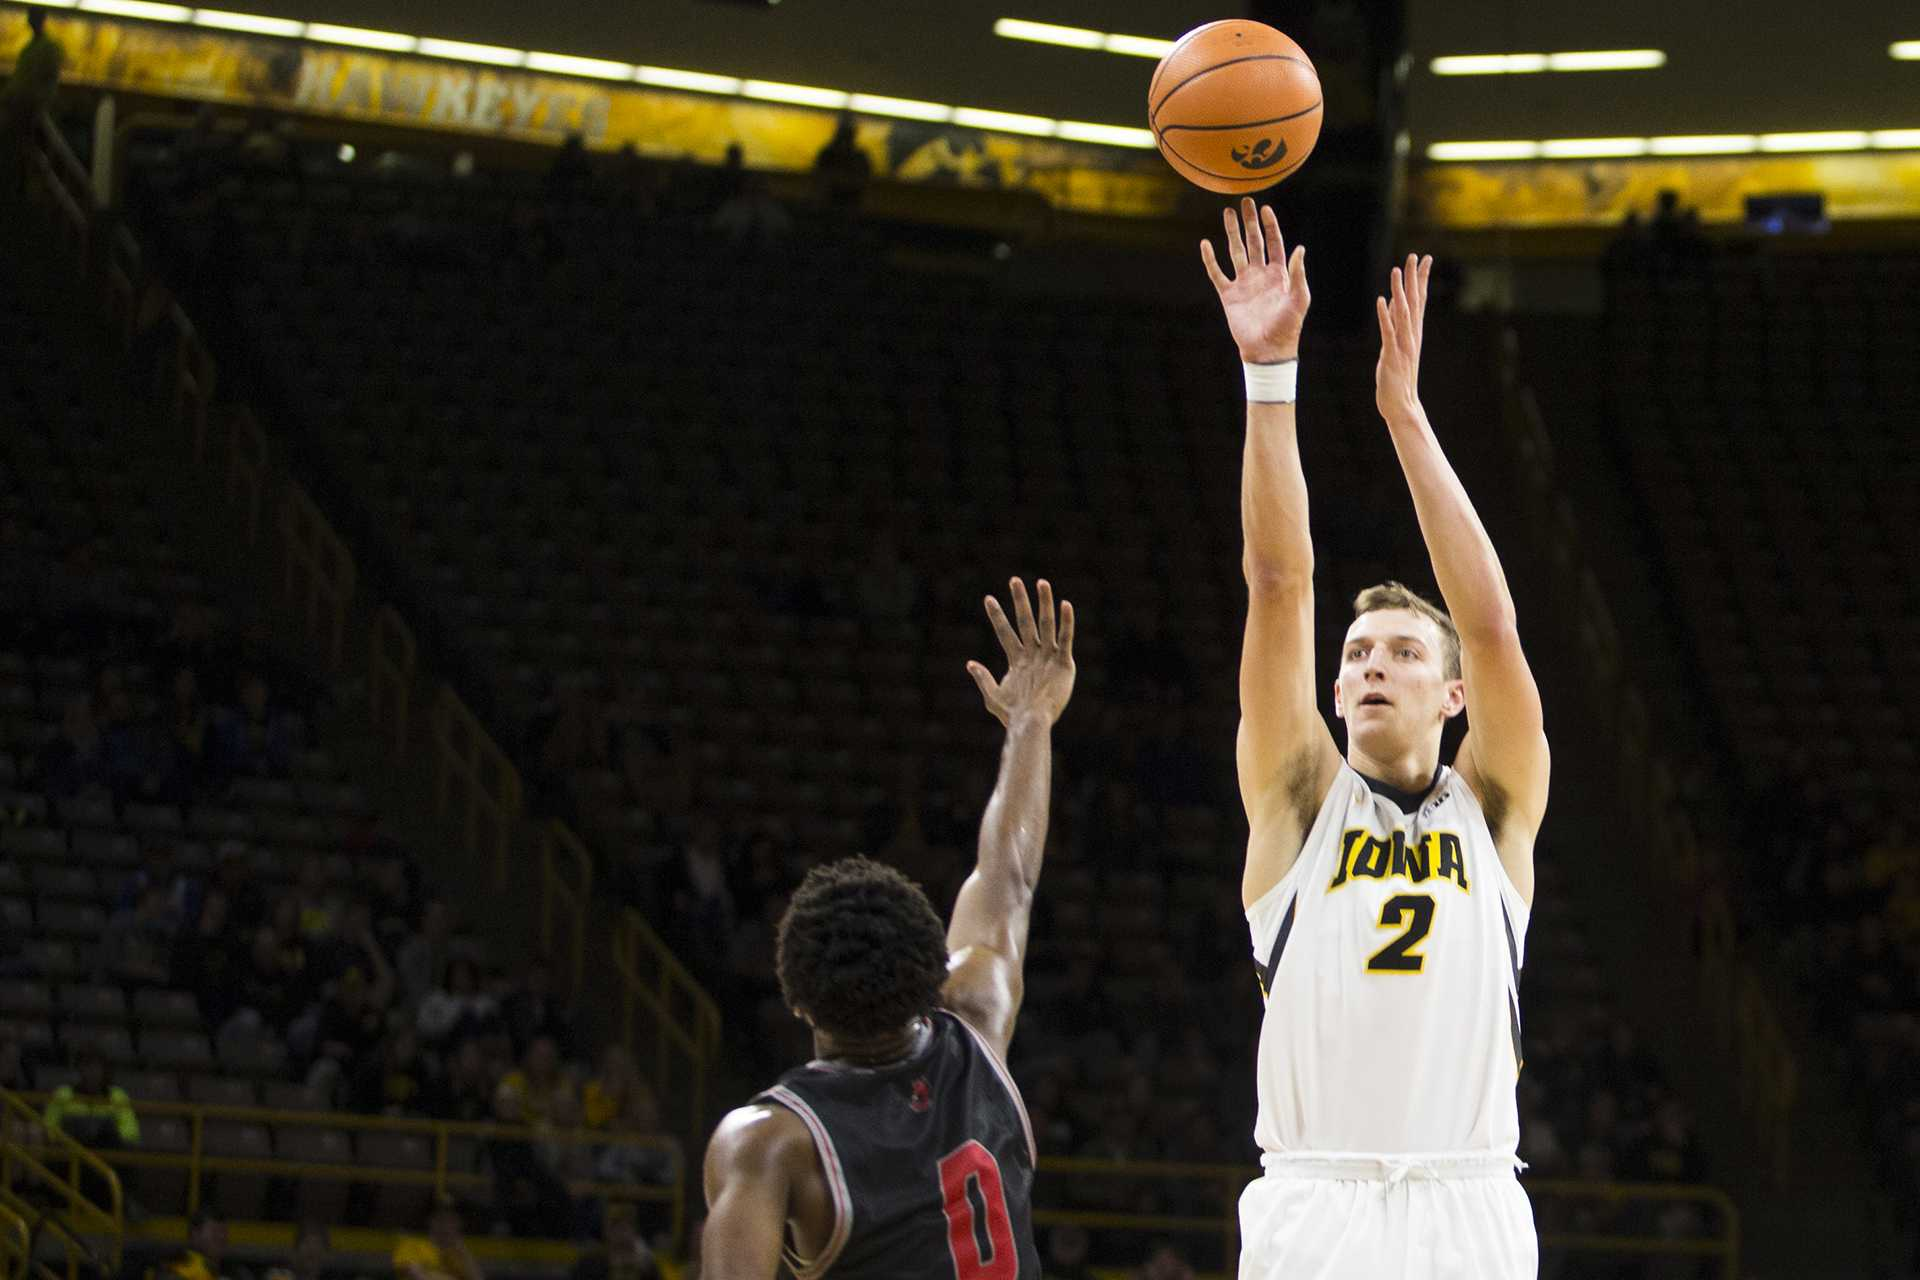 Iowa forward Jack Nunge shoots over William Jewell guard Keith Hayes during a men's basketball exhibition game between Iowan and William Jewell College in Carver-Hawkeye Arena on Friday, Oct. 27, 2017. The Hawkeyes defeated the Cardinals, 105-81. (Joseph Cress/The Daily Iowan)